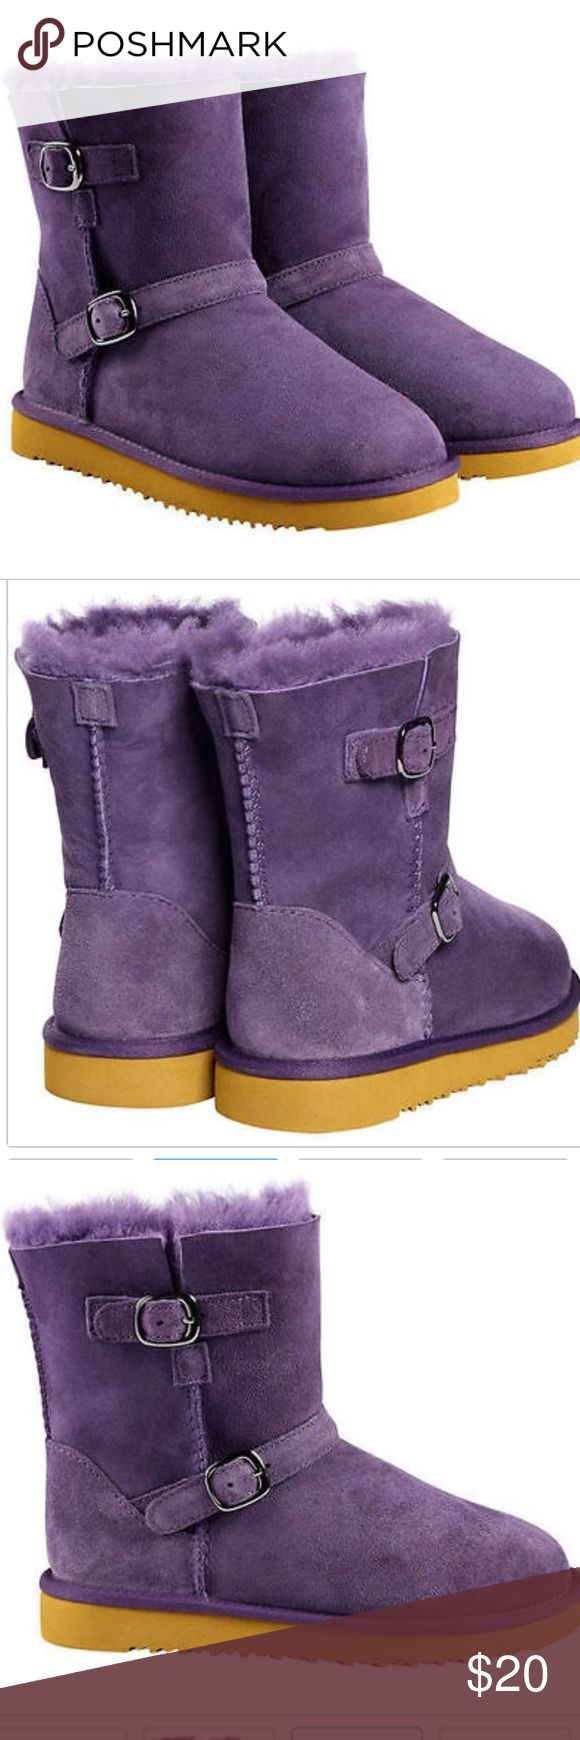 Girls Purple Buckle Boots Kirkland brand, retail for $28. Bought these and she only wore once! Very good condition, ugg like boots Shoes Boots